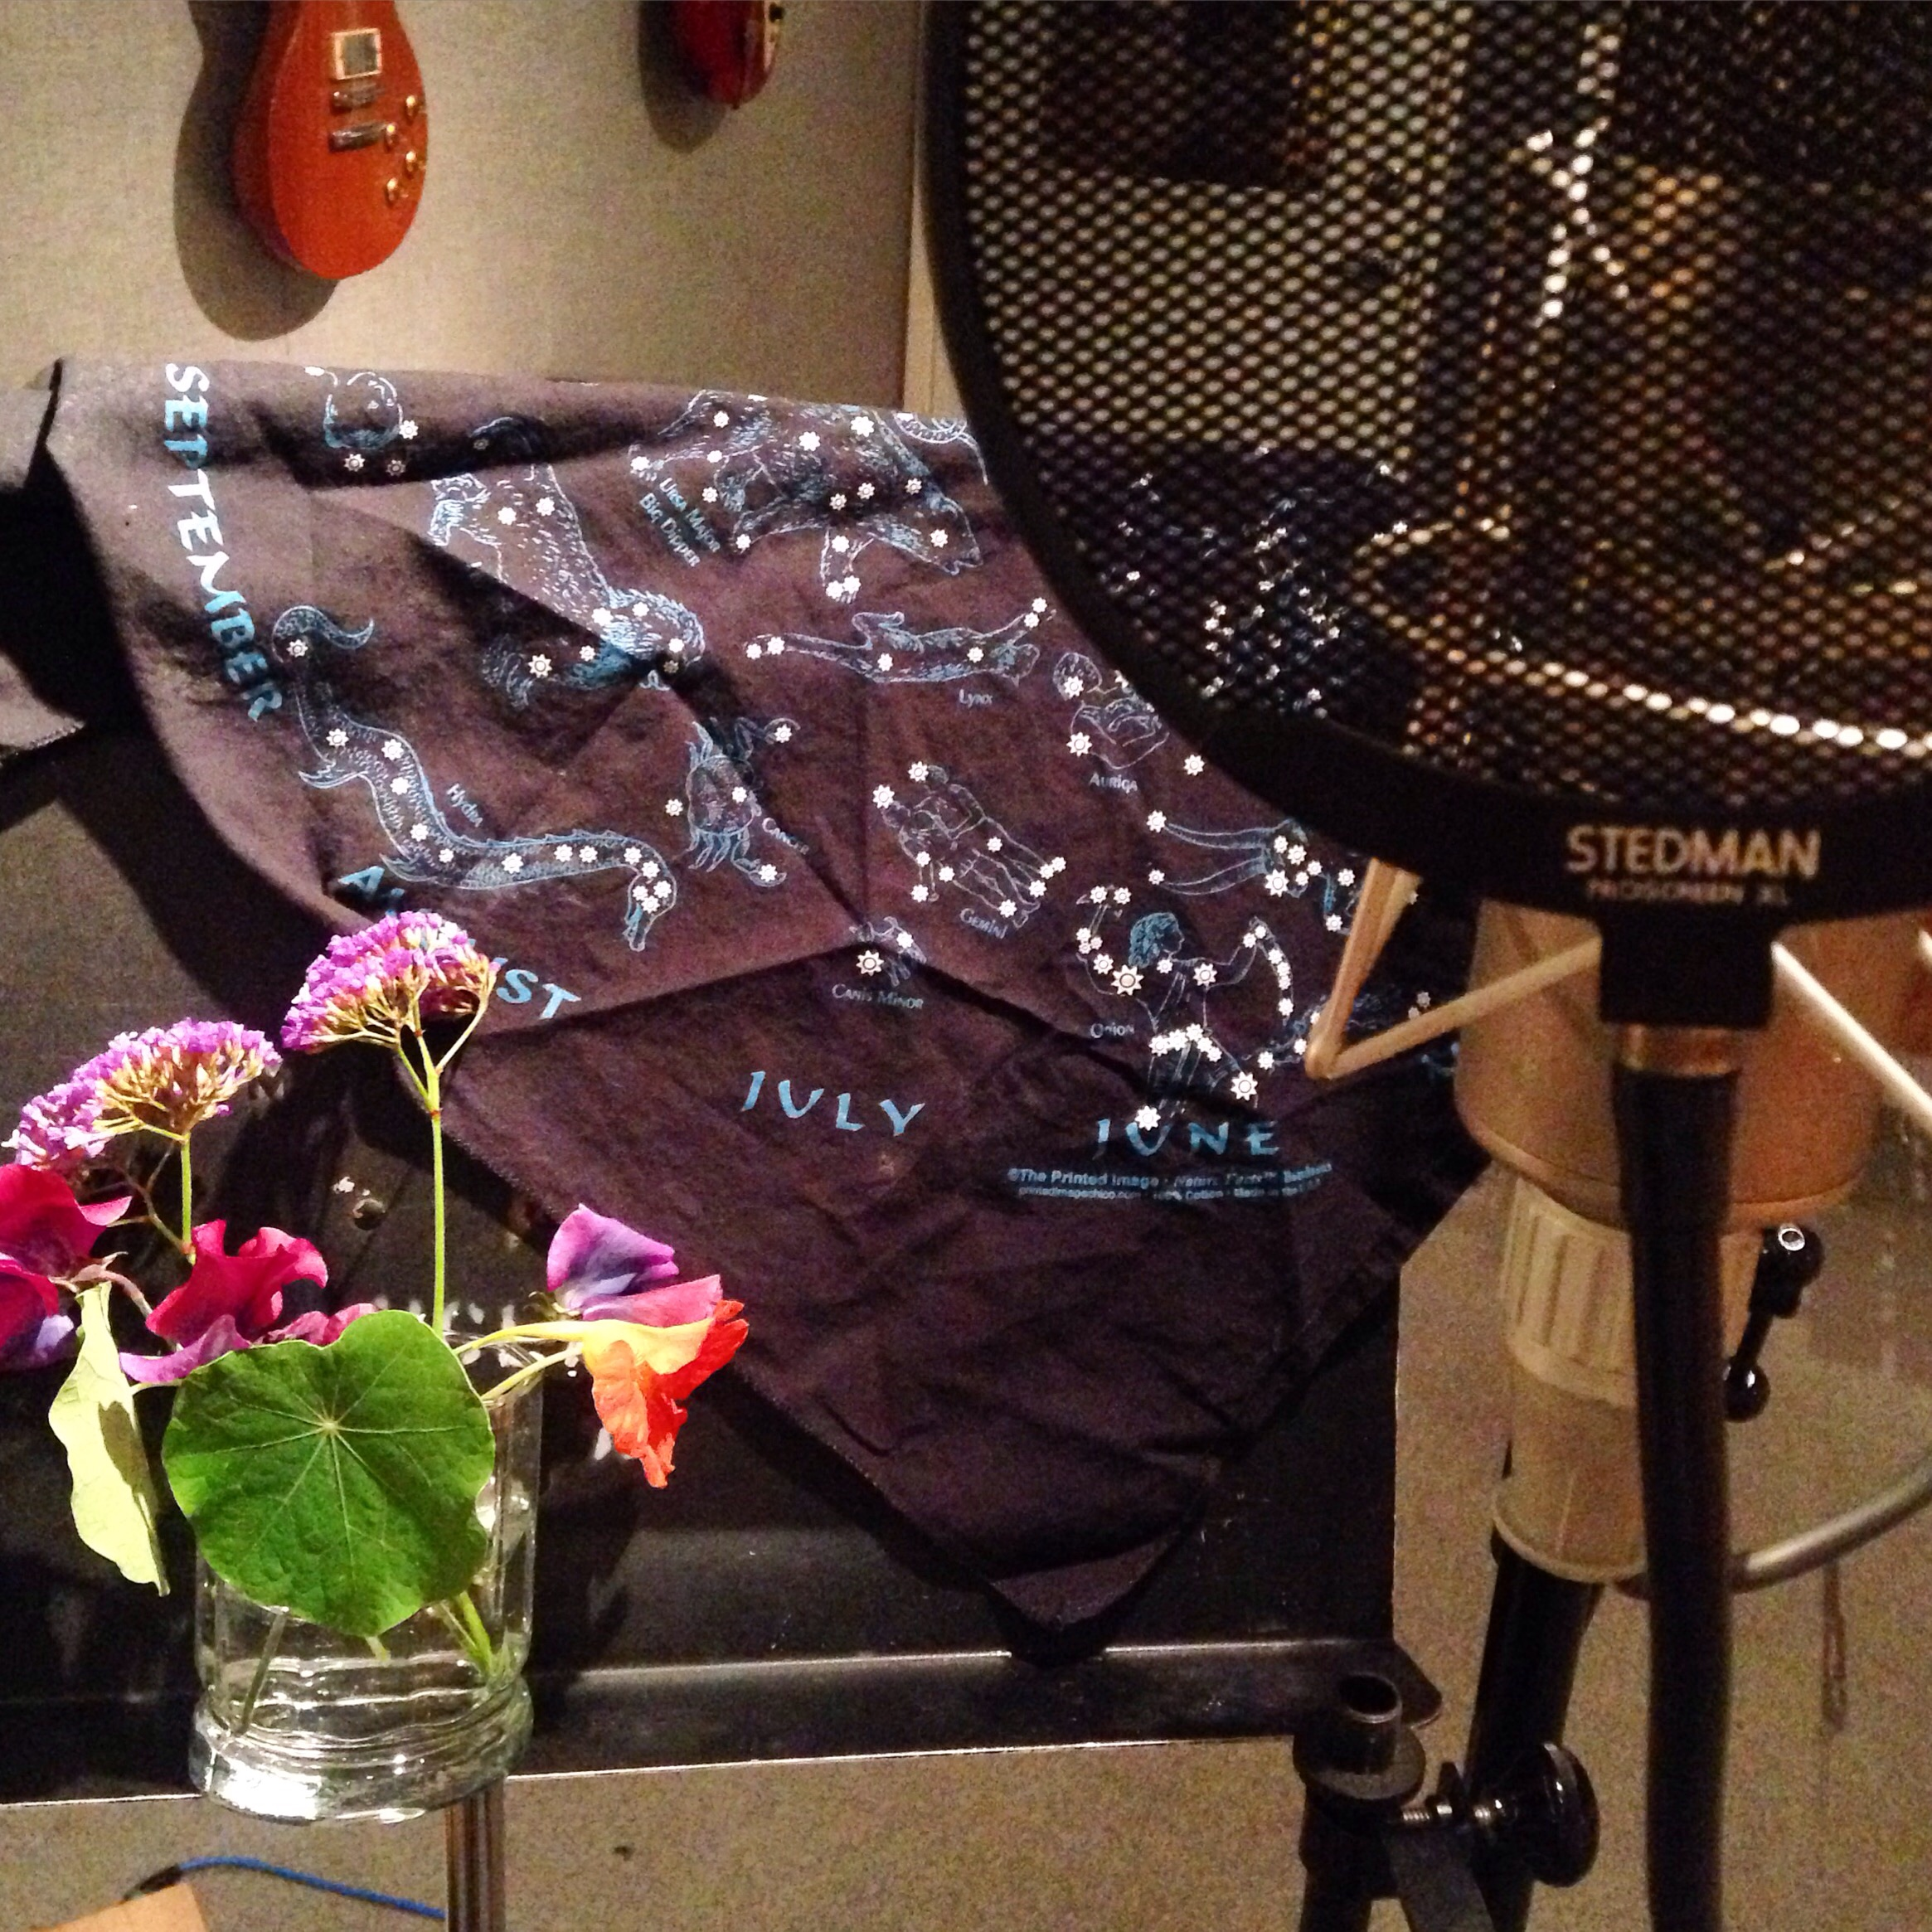 Every vocal booth should have flowers and the cosmos. I like having lots of beauty with me when I'm doing such new, vulnerable territory!